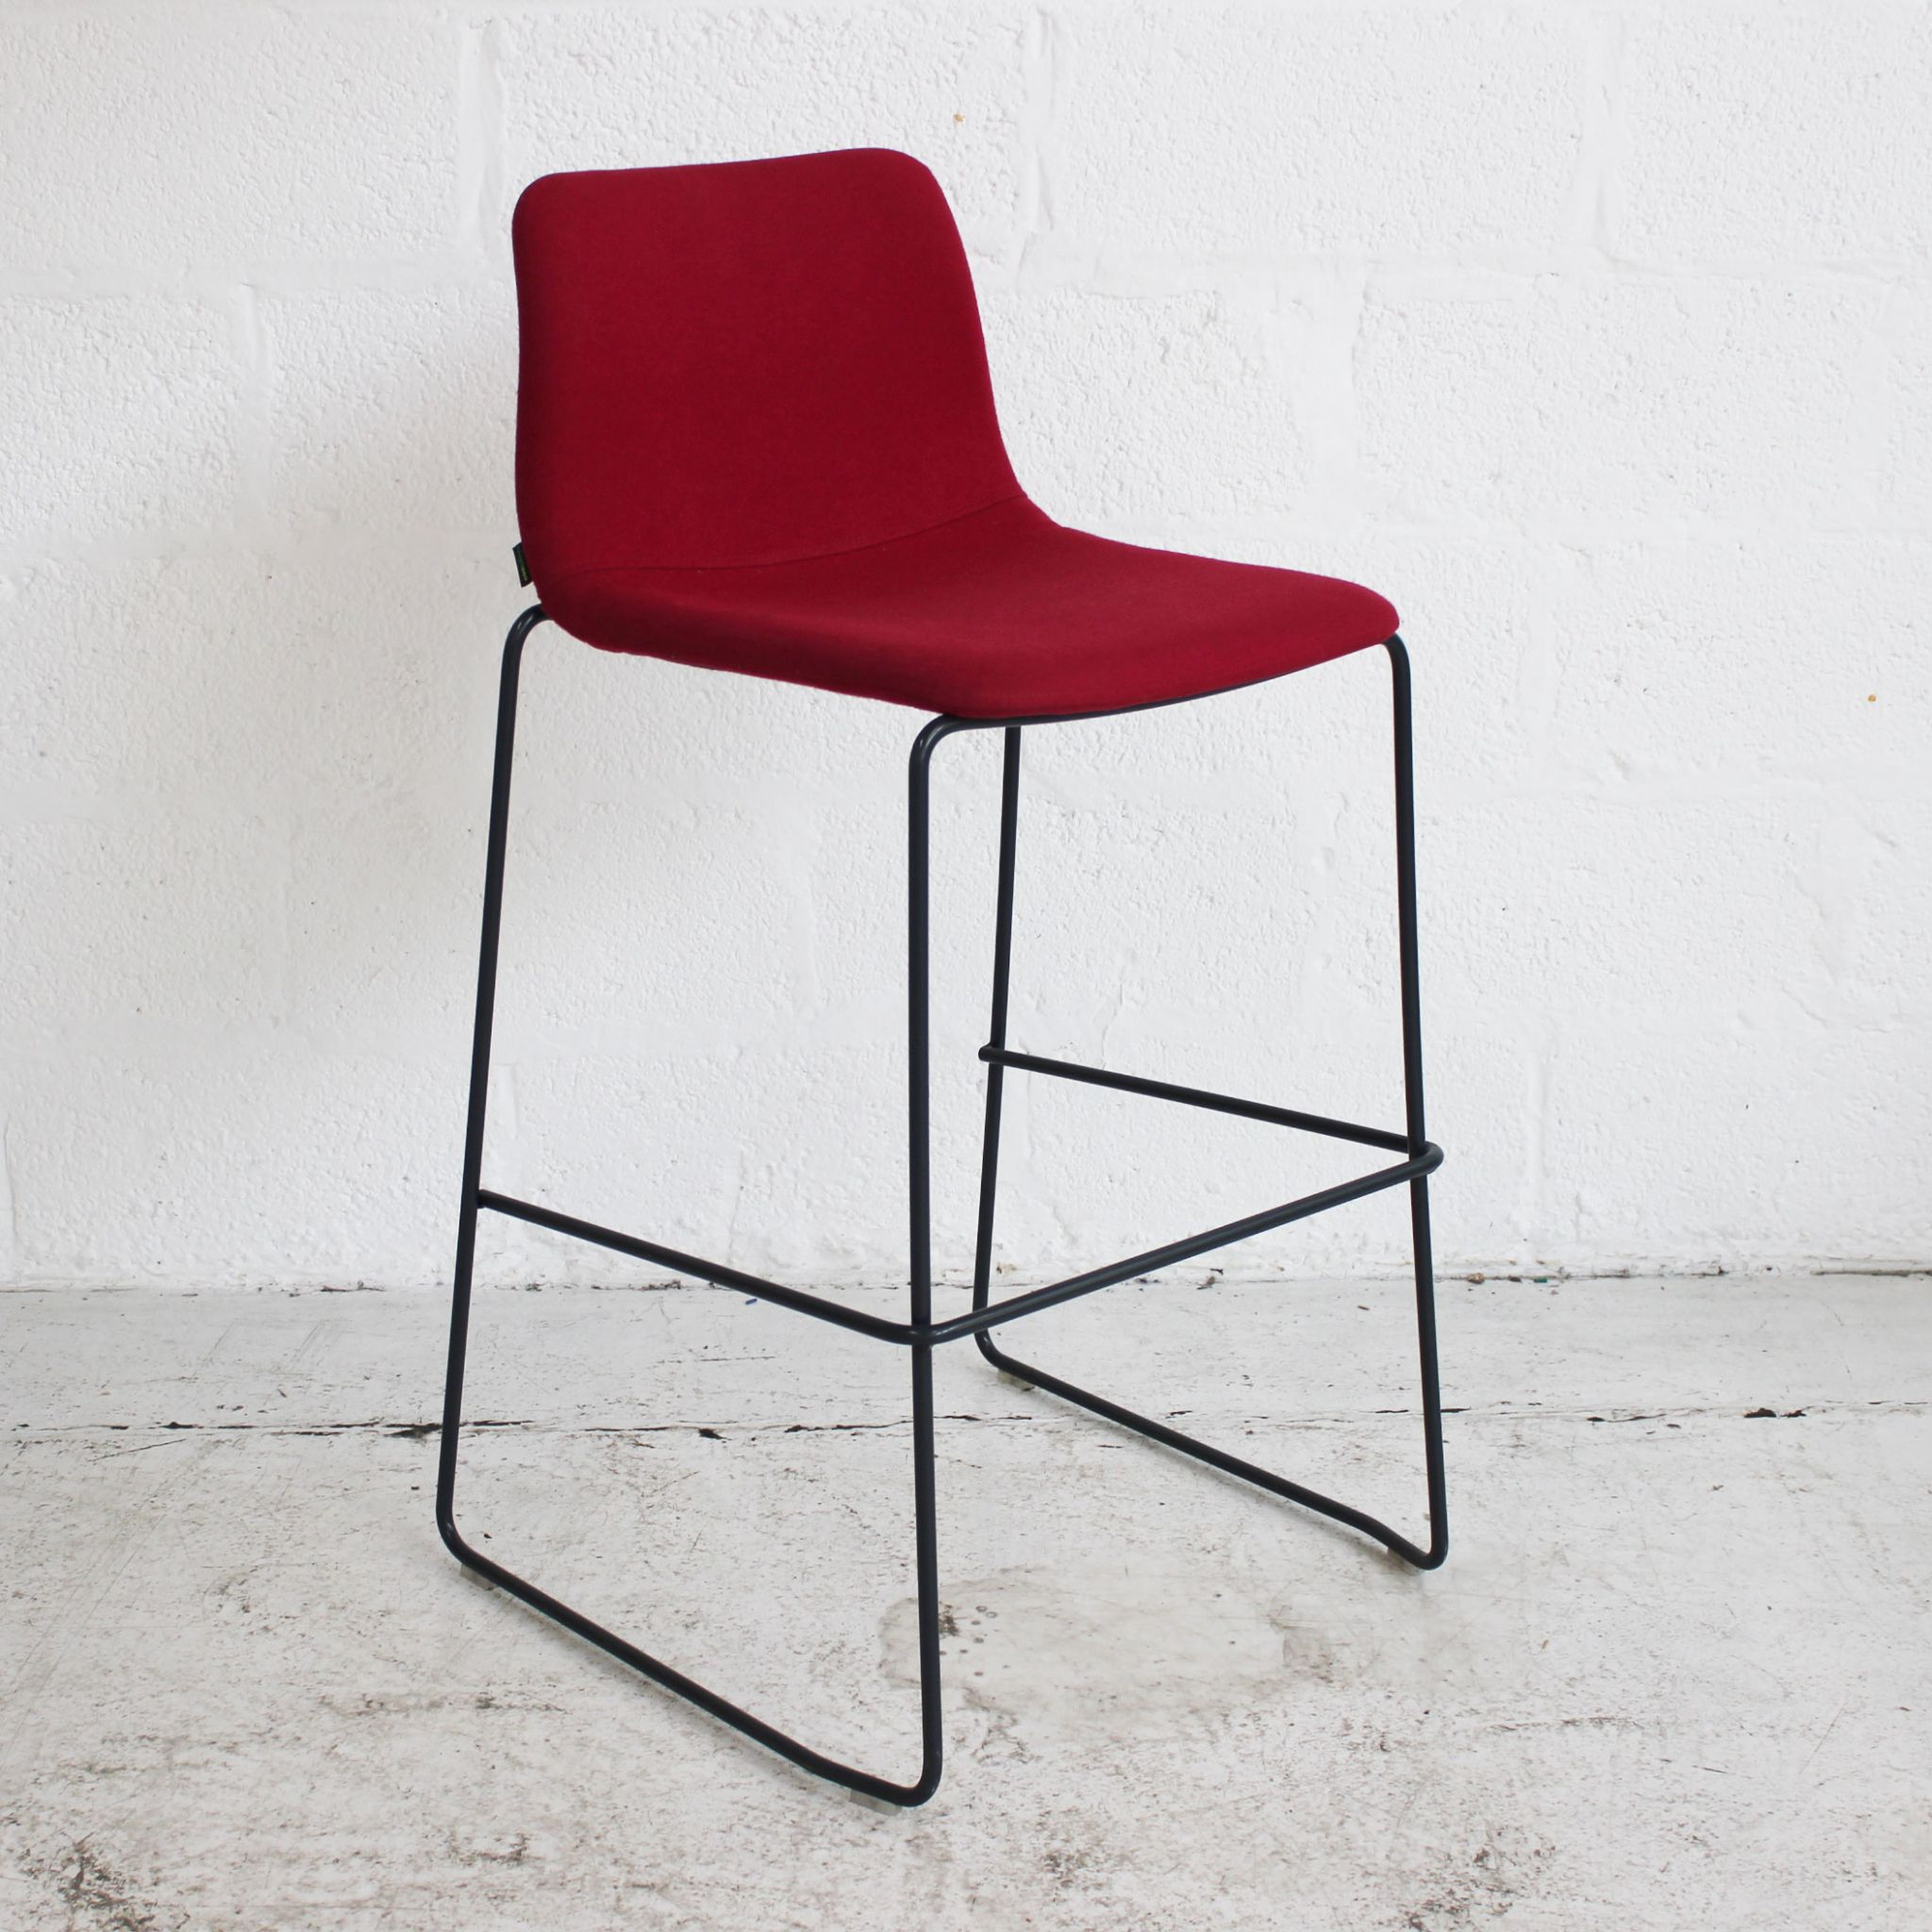 Surprising Naughtone Viv Stool Red Caraccident5 Cool Chair Designs And Ideas Caraccident5Info